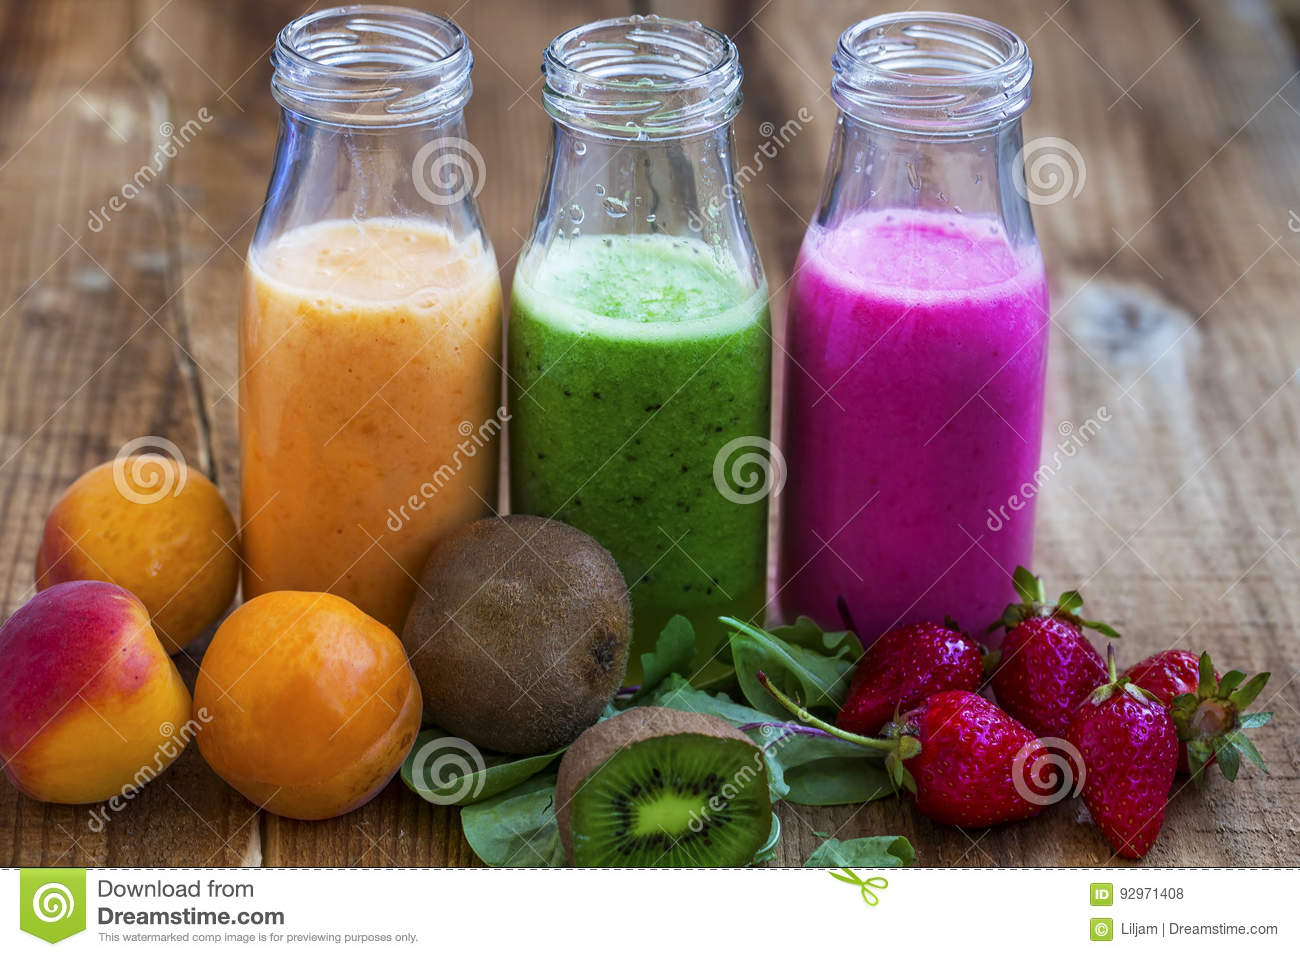 Download Fresh Healthy Three Types Of Fruits Juices Or Smoothies Bottles, Stock Photo - Image of juice, juicy: 92971408